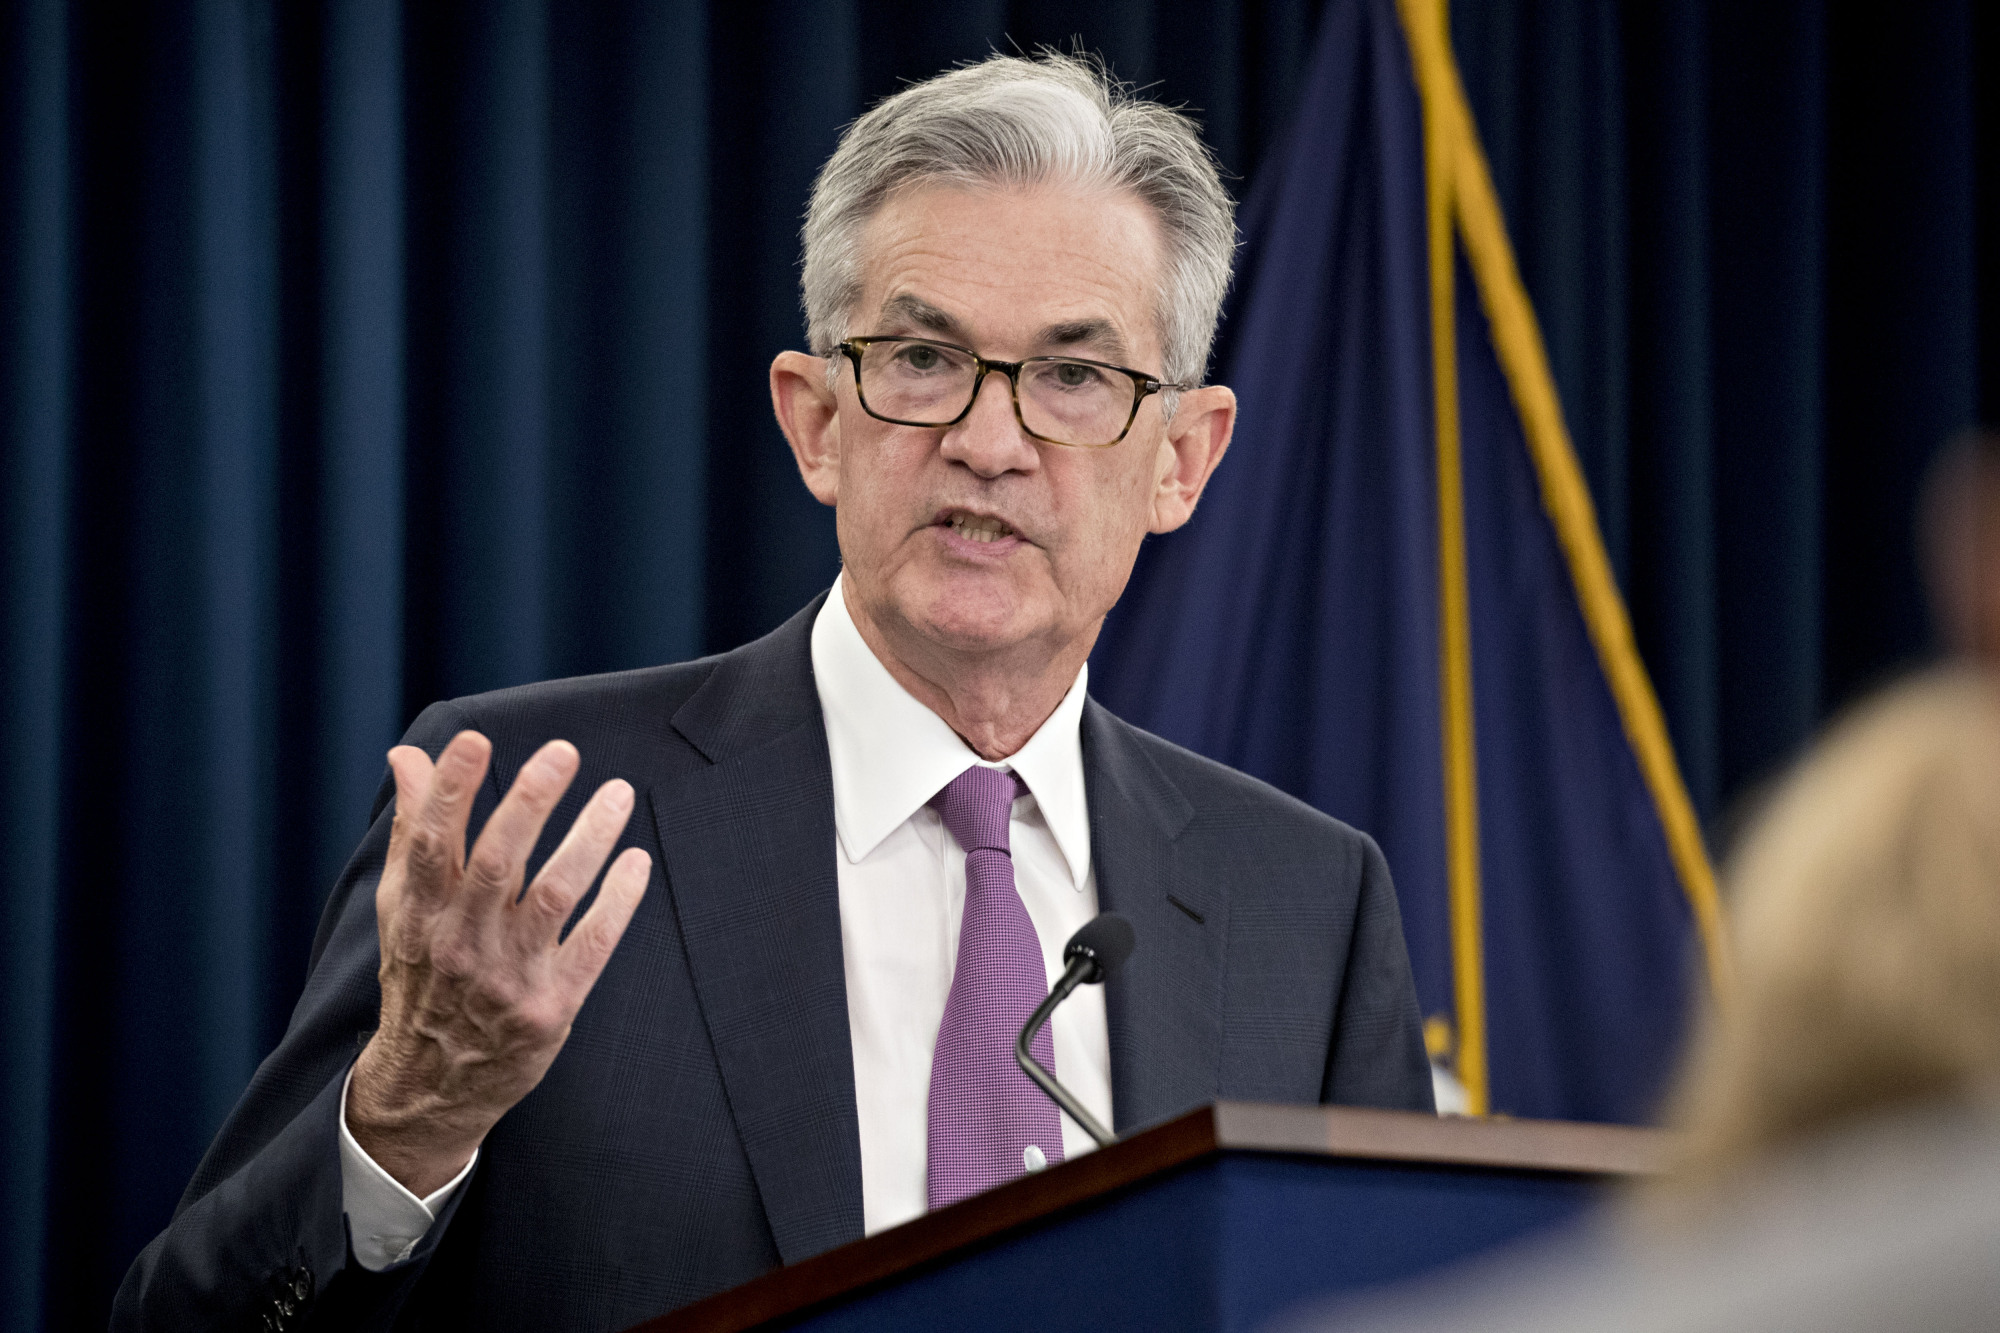 Fed Chairman Jerome Powell met with Coinbase CEO in May of this year, according to reporters